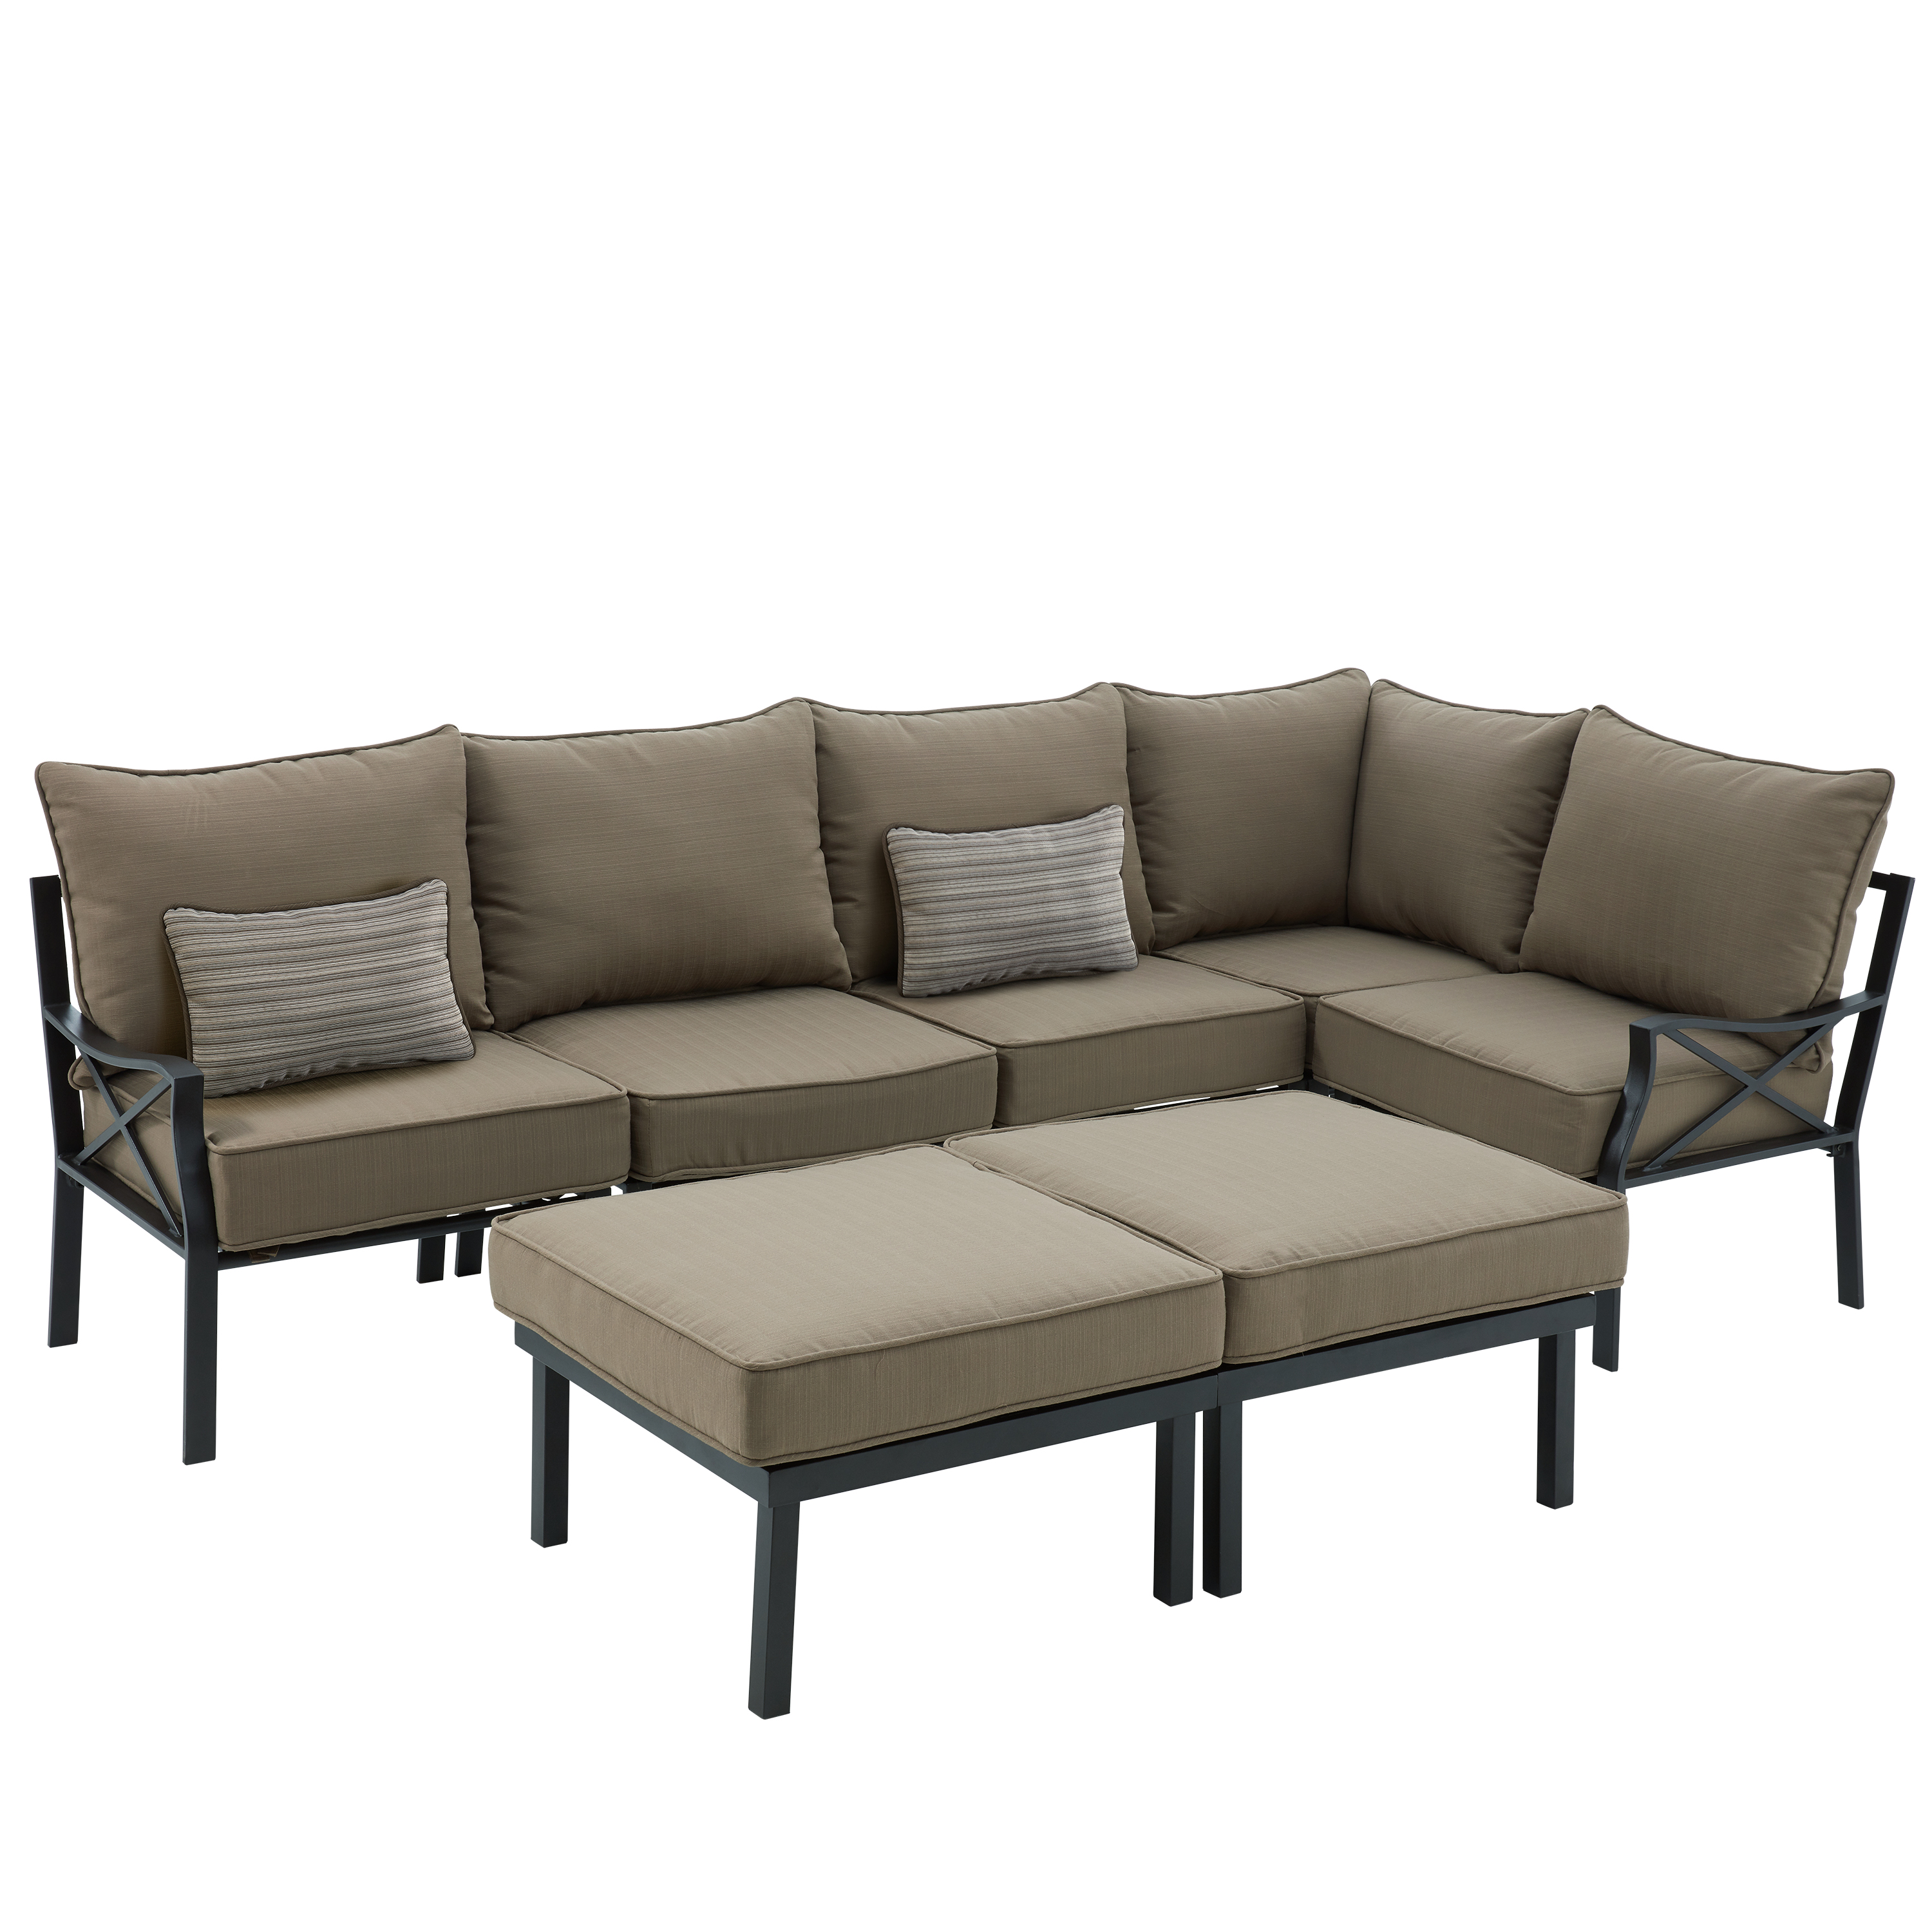 Mainstays Sandhill 7 Piece Outdoor Sofa Sectional Set, Seats 5 Image 3 Of 9